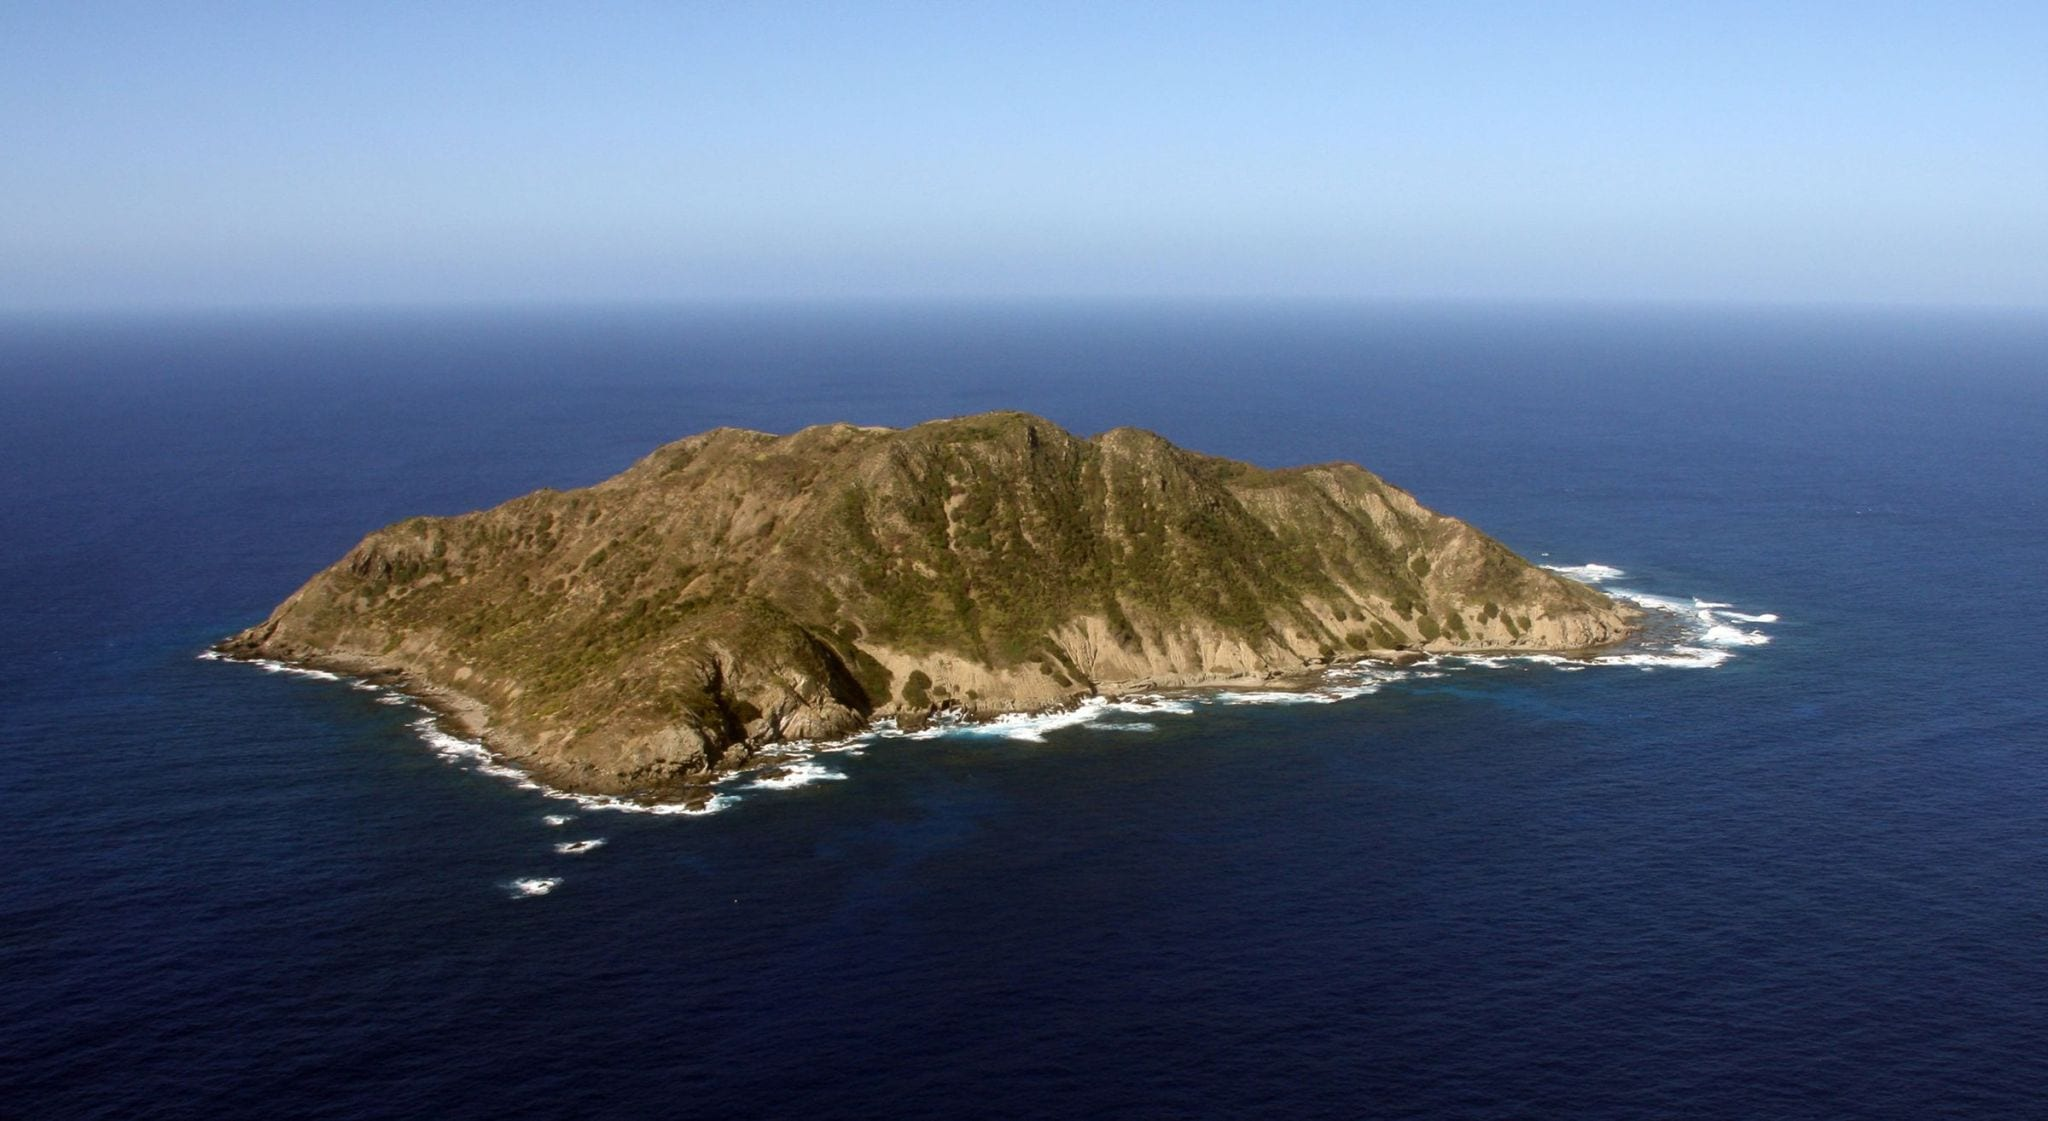 Puerto Rico's Desecheo Island, The Most Dangerous Destination in the Caribbean